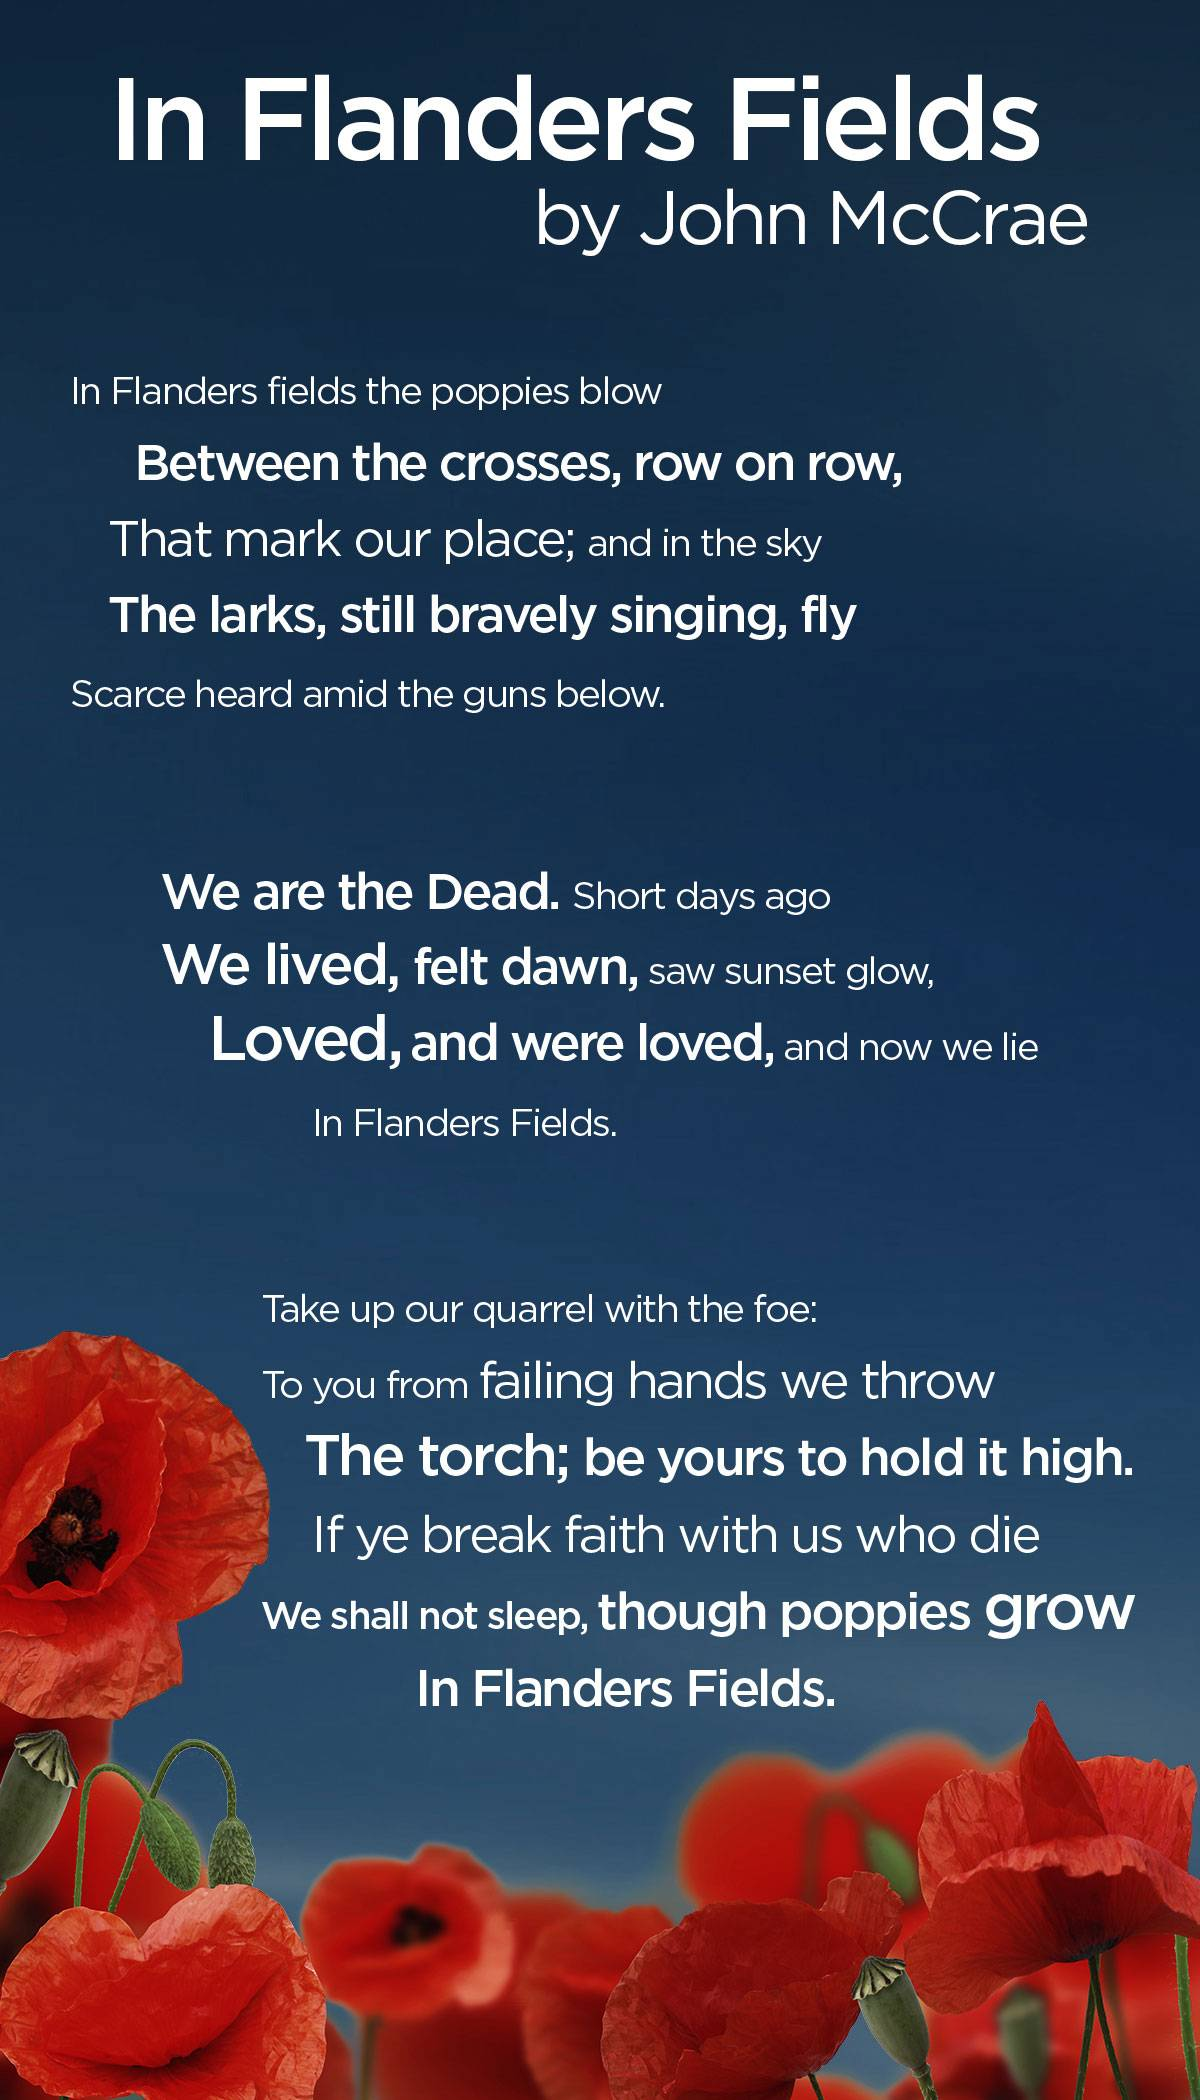 Remembrance Day 2020 @ Cenotaph